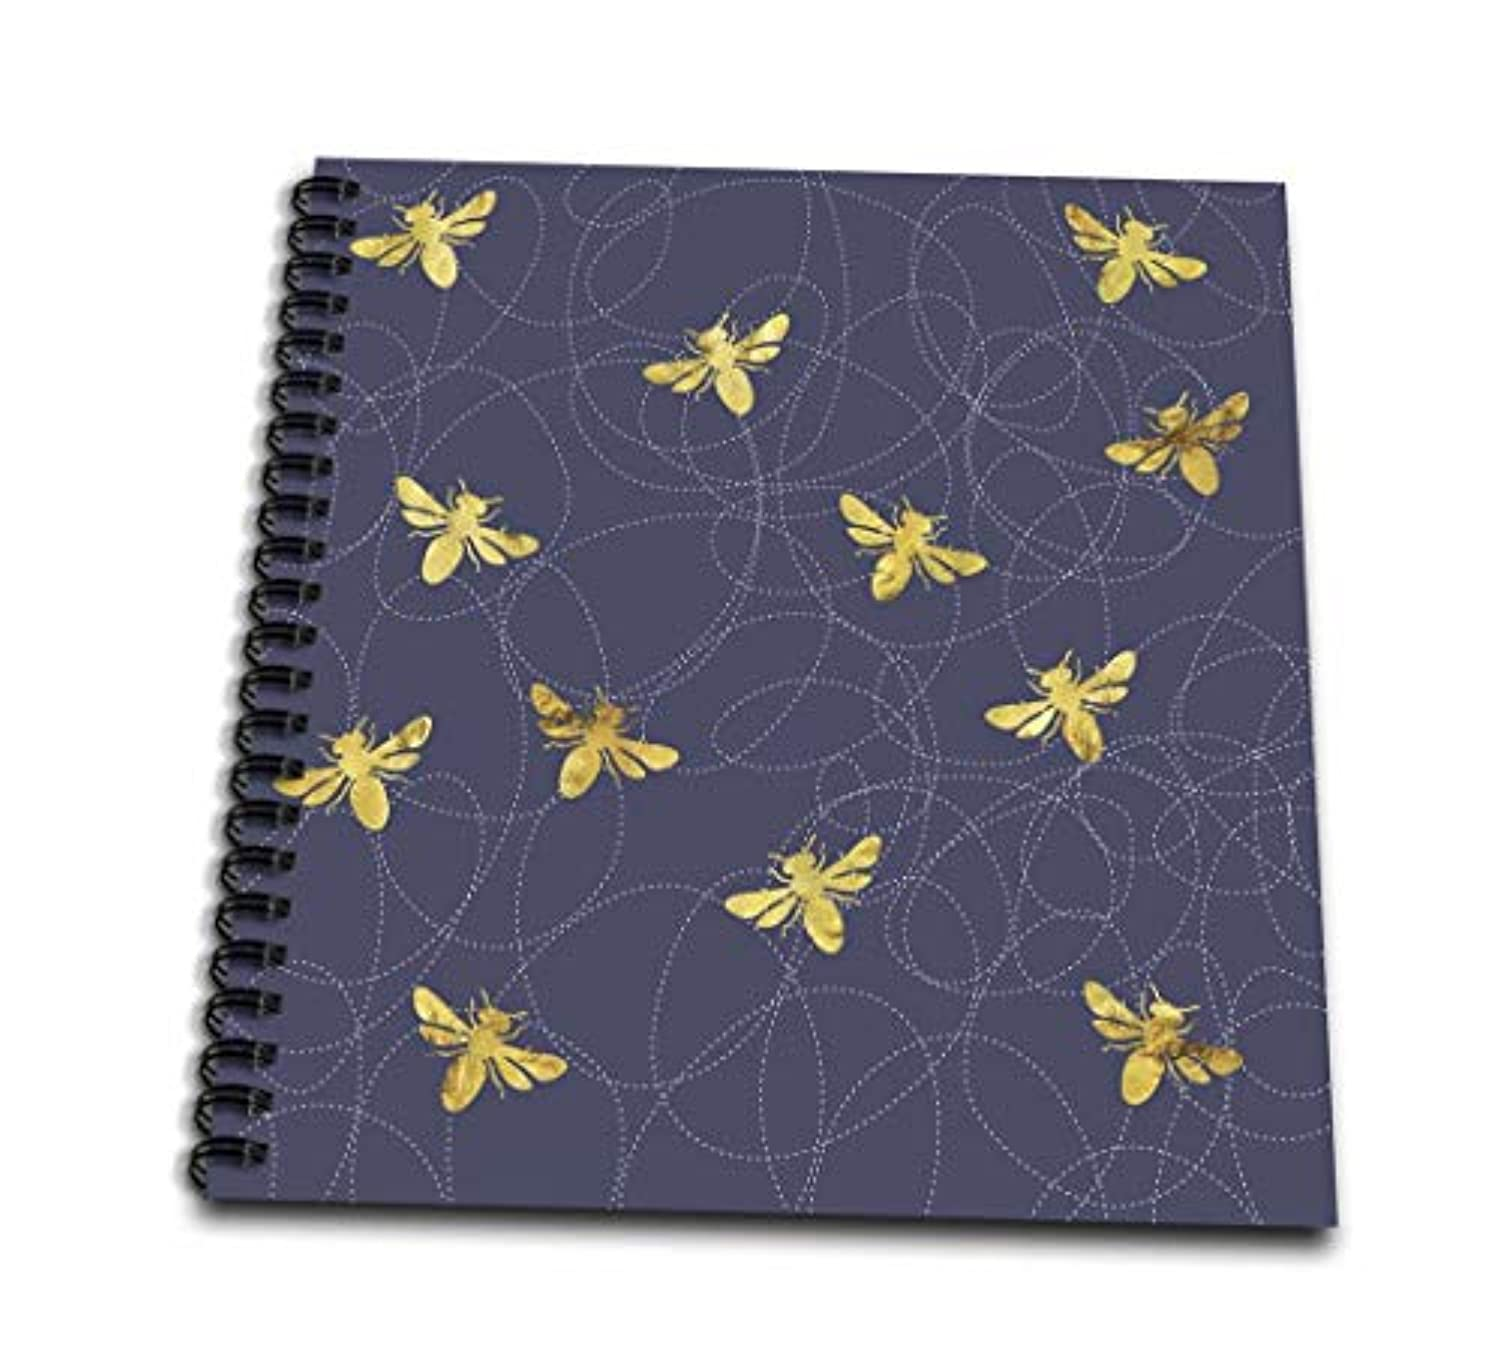 3dローズAnne Marie Baugh – パターン – GlamゴールドBees onブルーパターン – Drawing Book 4x4 notepad db_265020_3